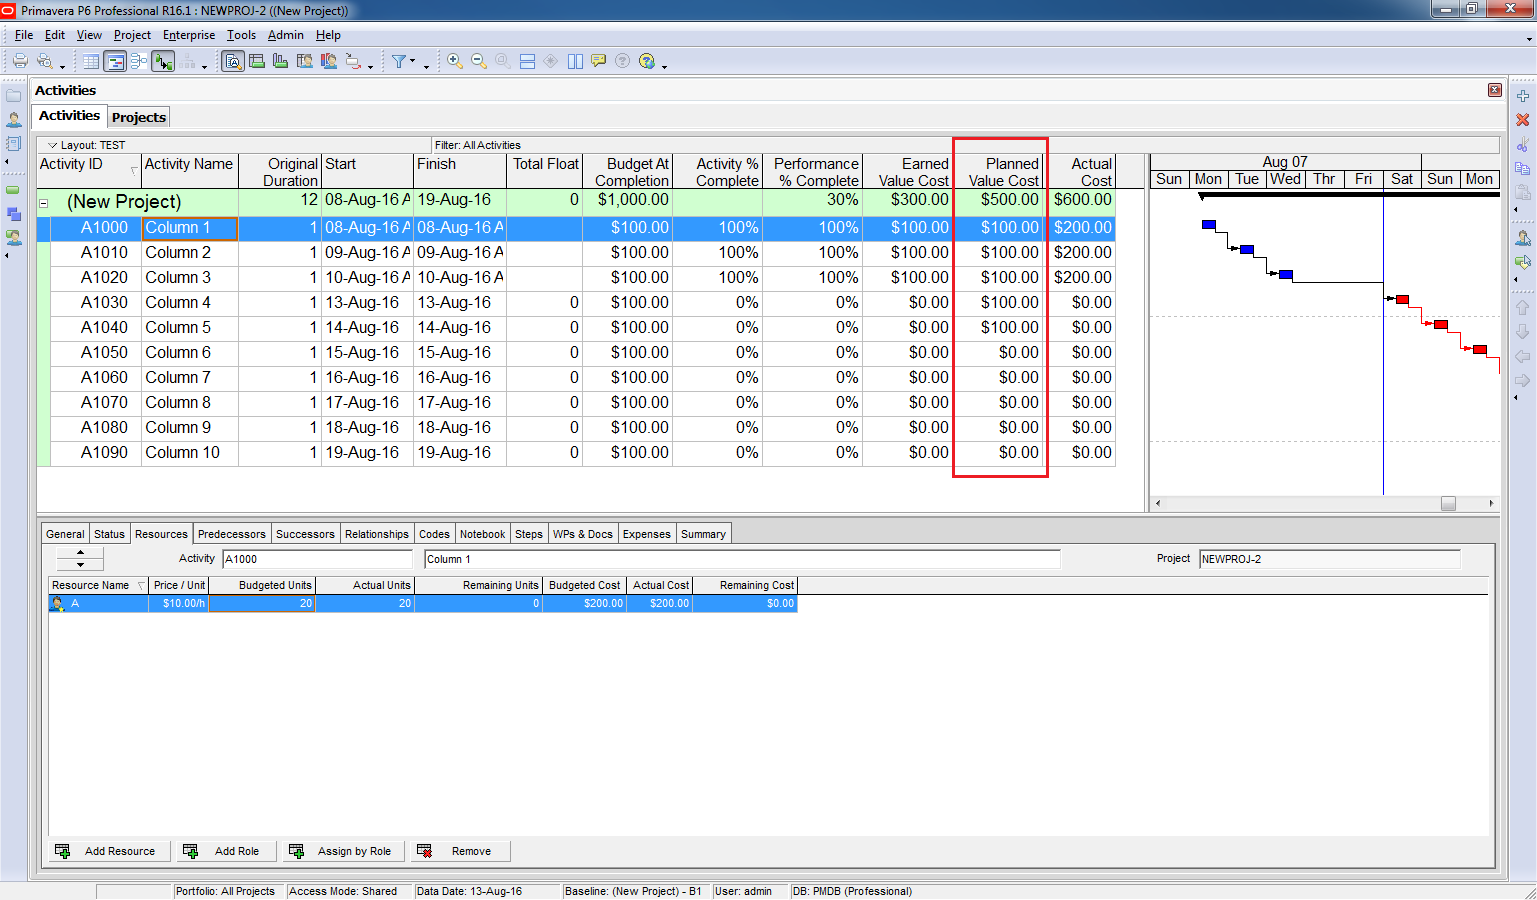 How to use Earned Value Management in Primavera P6 - 5